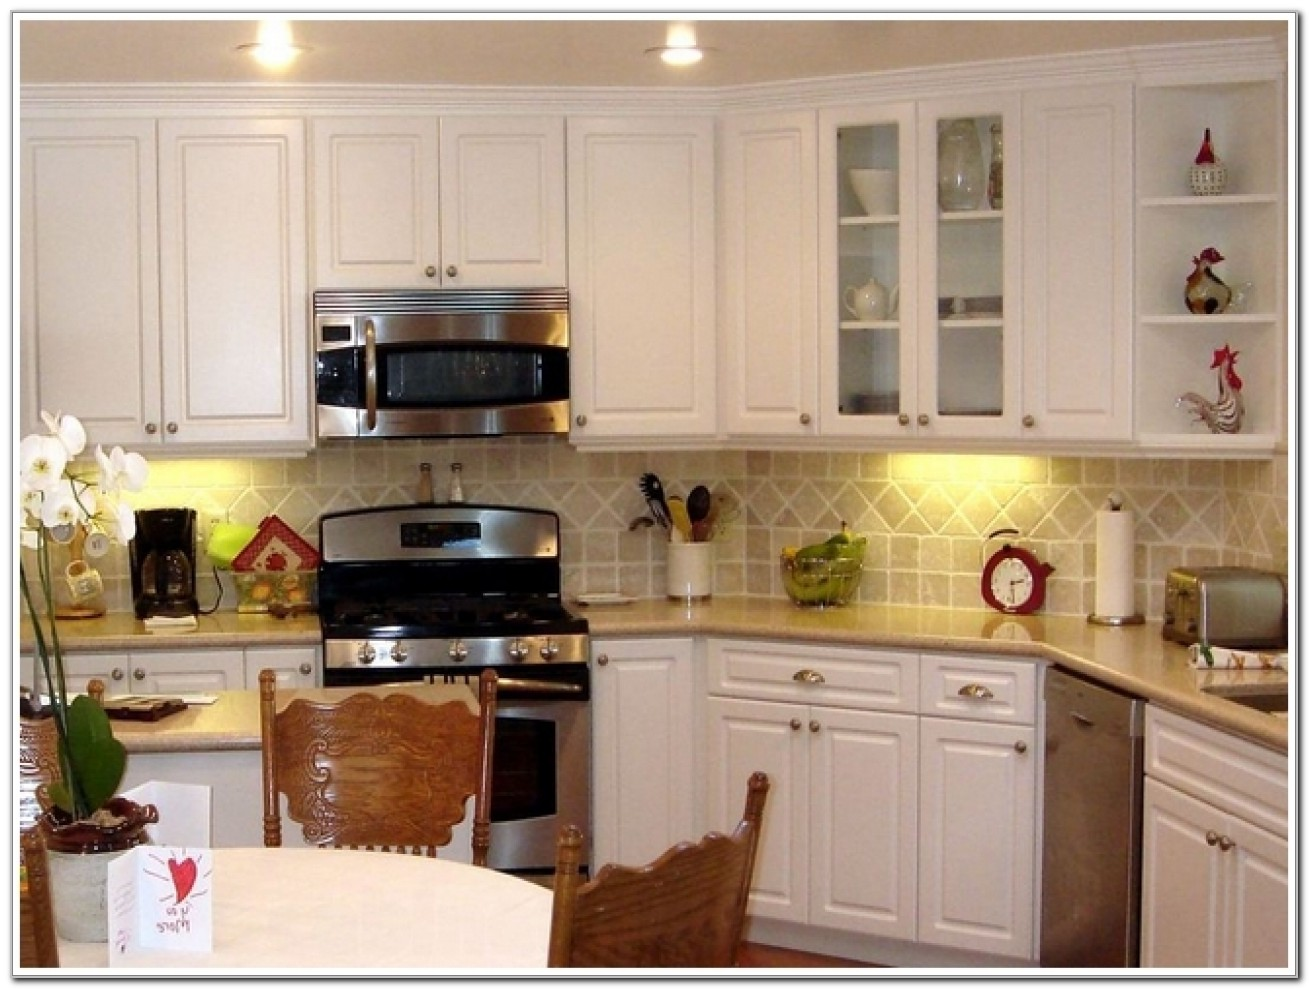 Refacing Laminate Kitchen Cabinet Doors